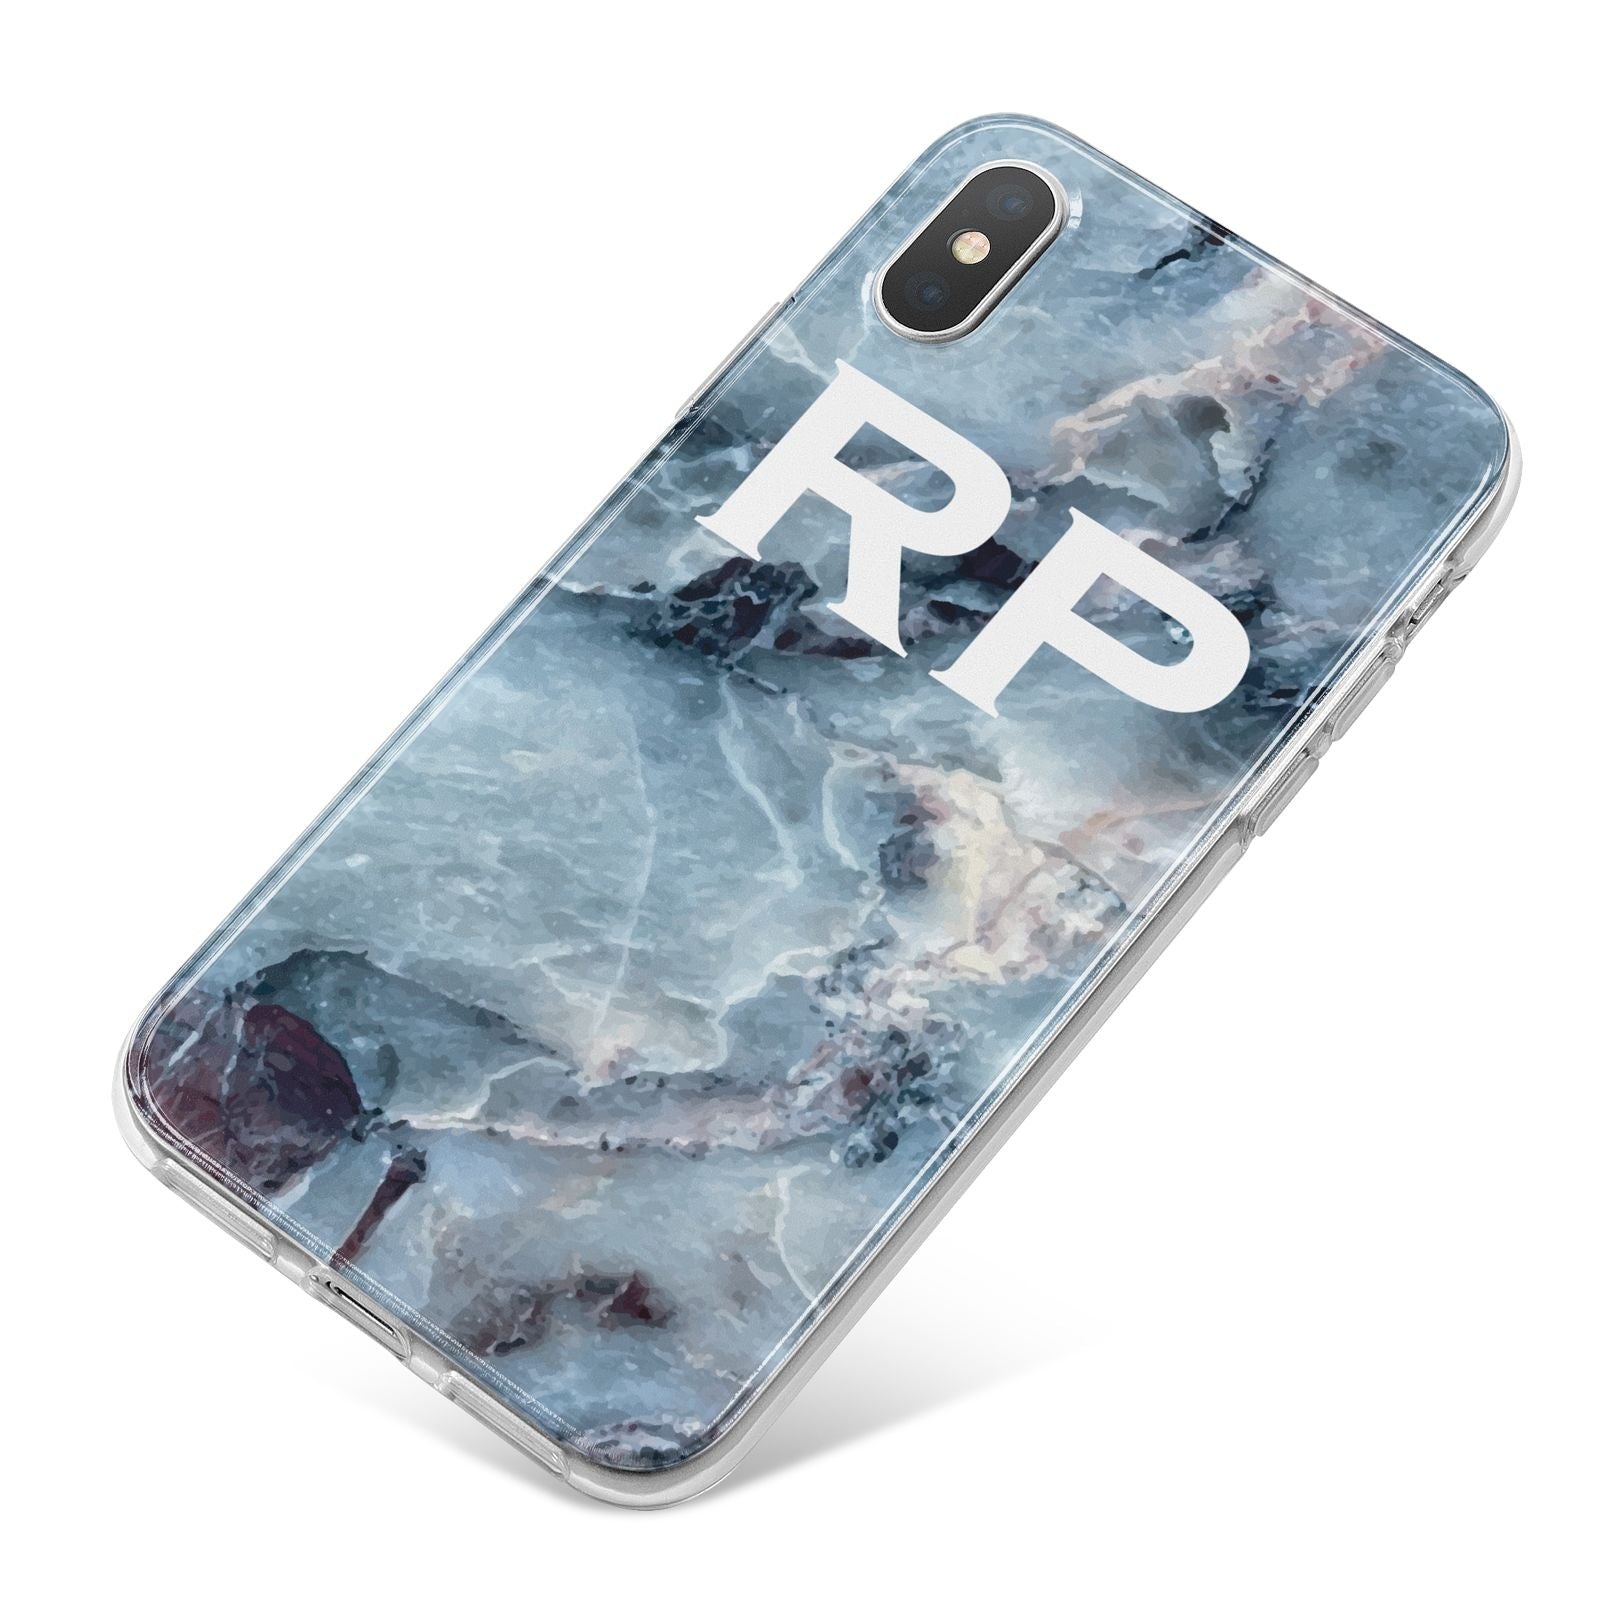 Personalised White Initials Marble iPhone X Bumper Case on Silver iPhone